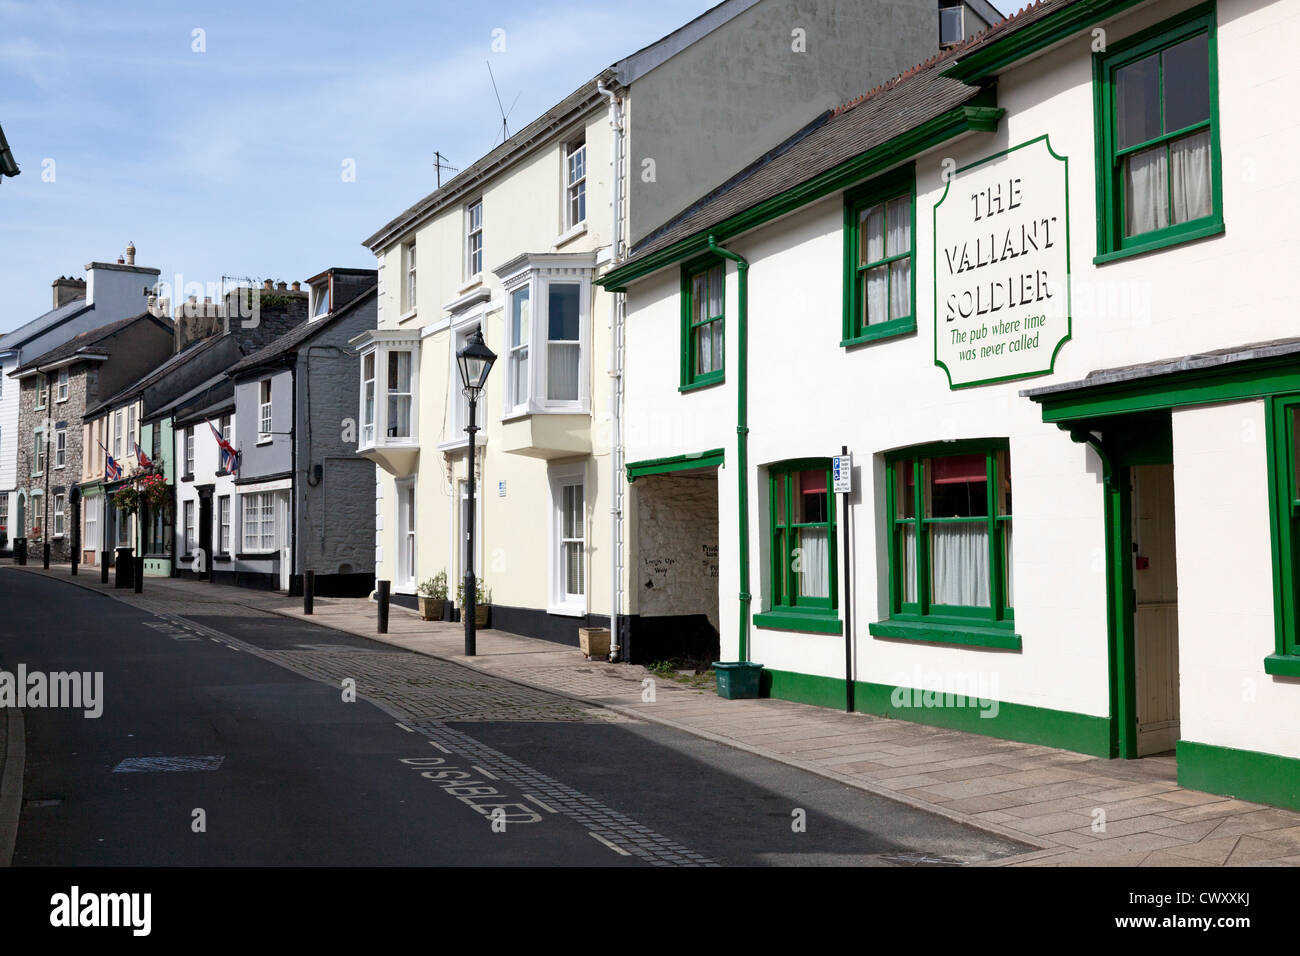 the-valiant-soldier-pub-buckfastleigh-devon-CWXXKJ.jpg